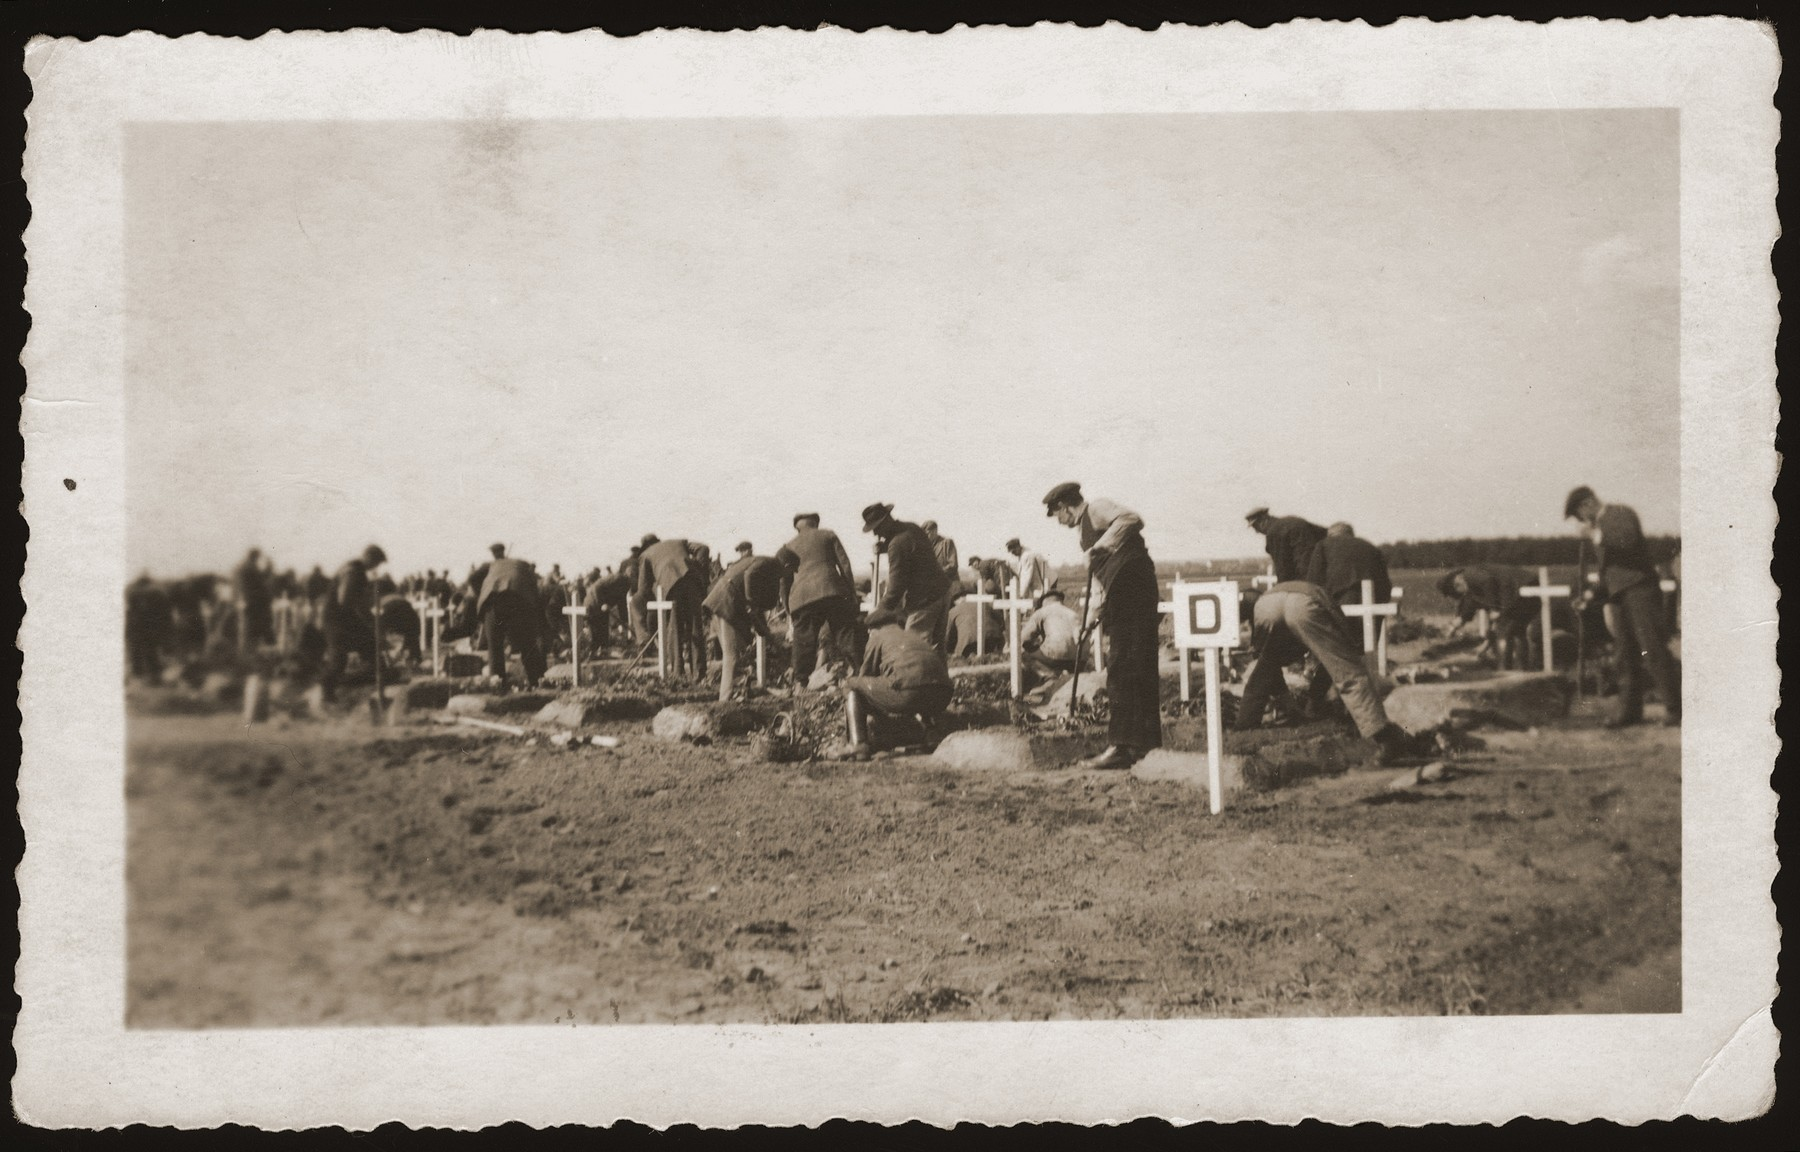 German civilians place pine boughs on the graves of concentration camp prisoners killed by the SS in a barn outside of Gardelegen.